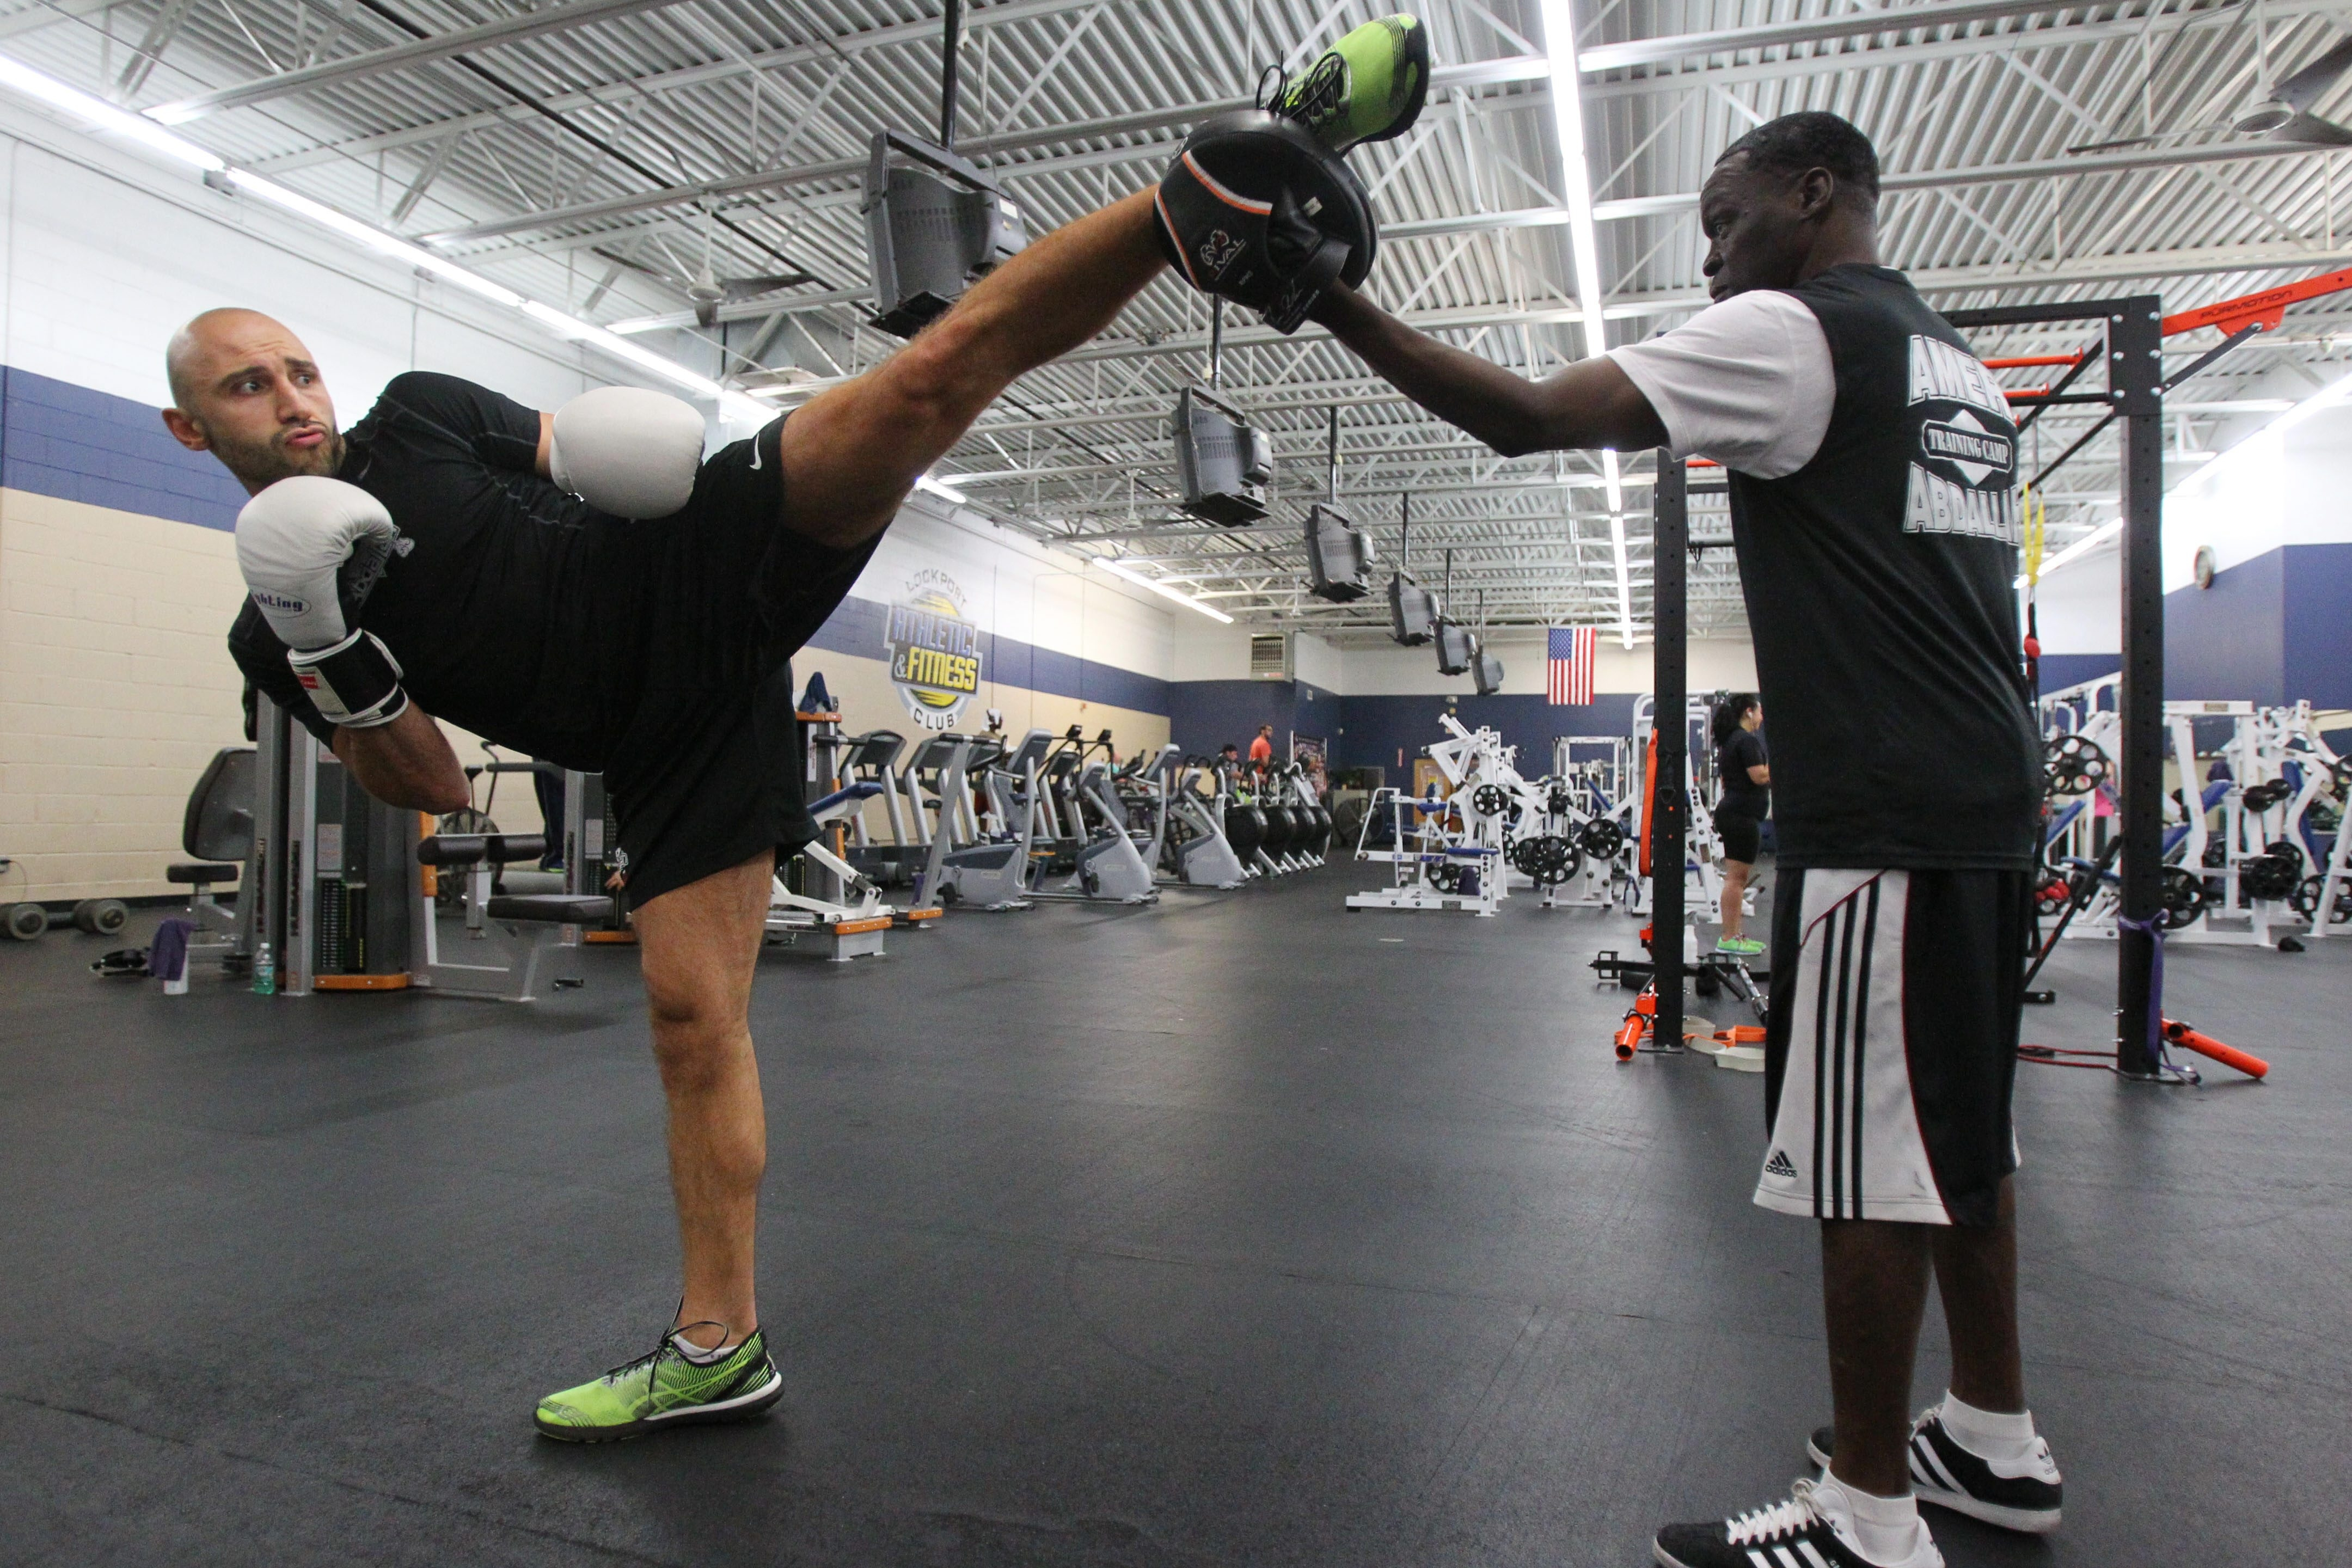 Kickboxer Amer Abdallah of Lockport works out with trainer Jeff Mayweather at the Lockport Athletic & Fitness club.